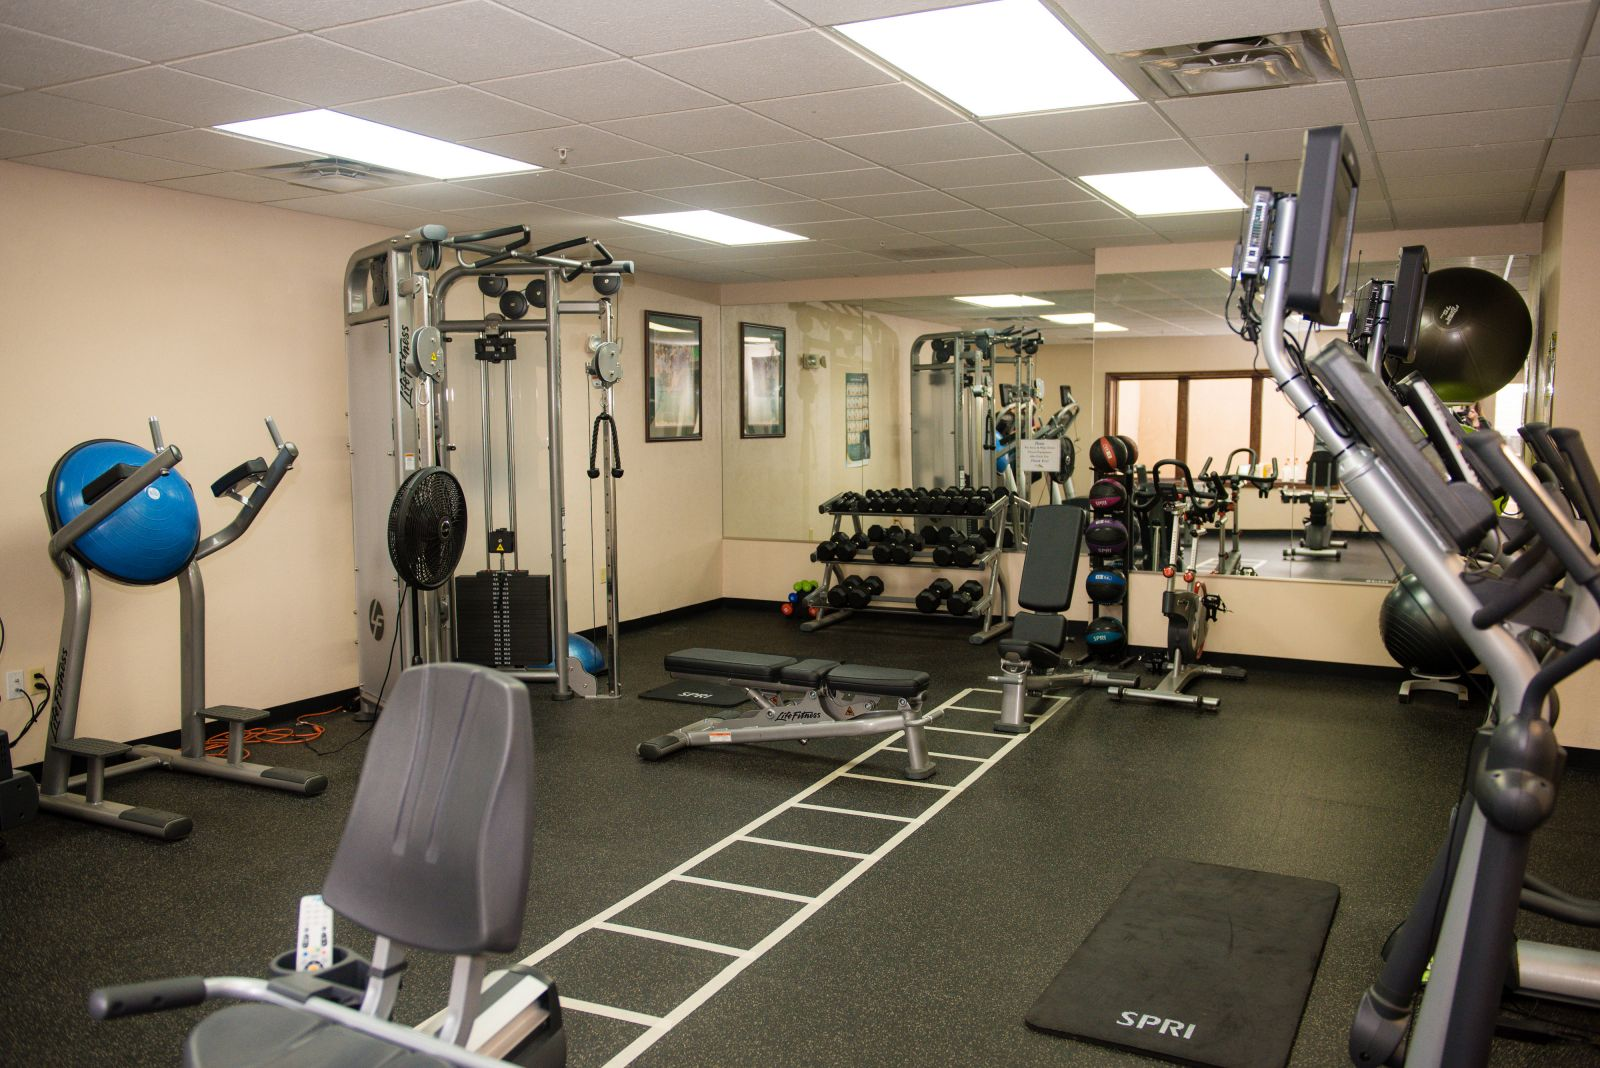 The workout room at The Fox Hill Club